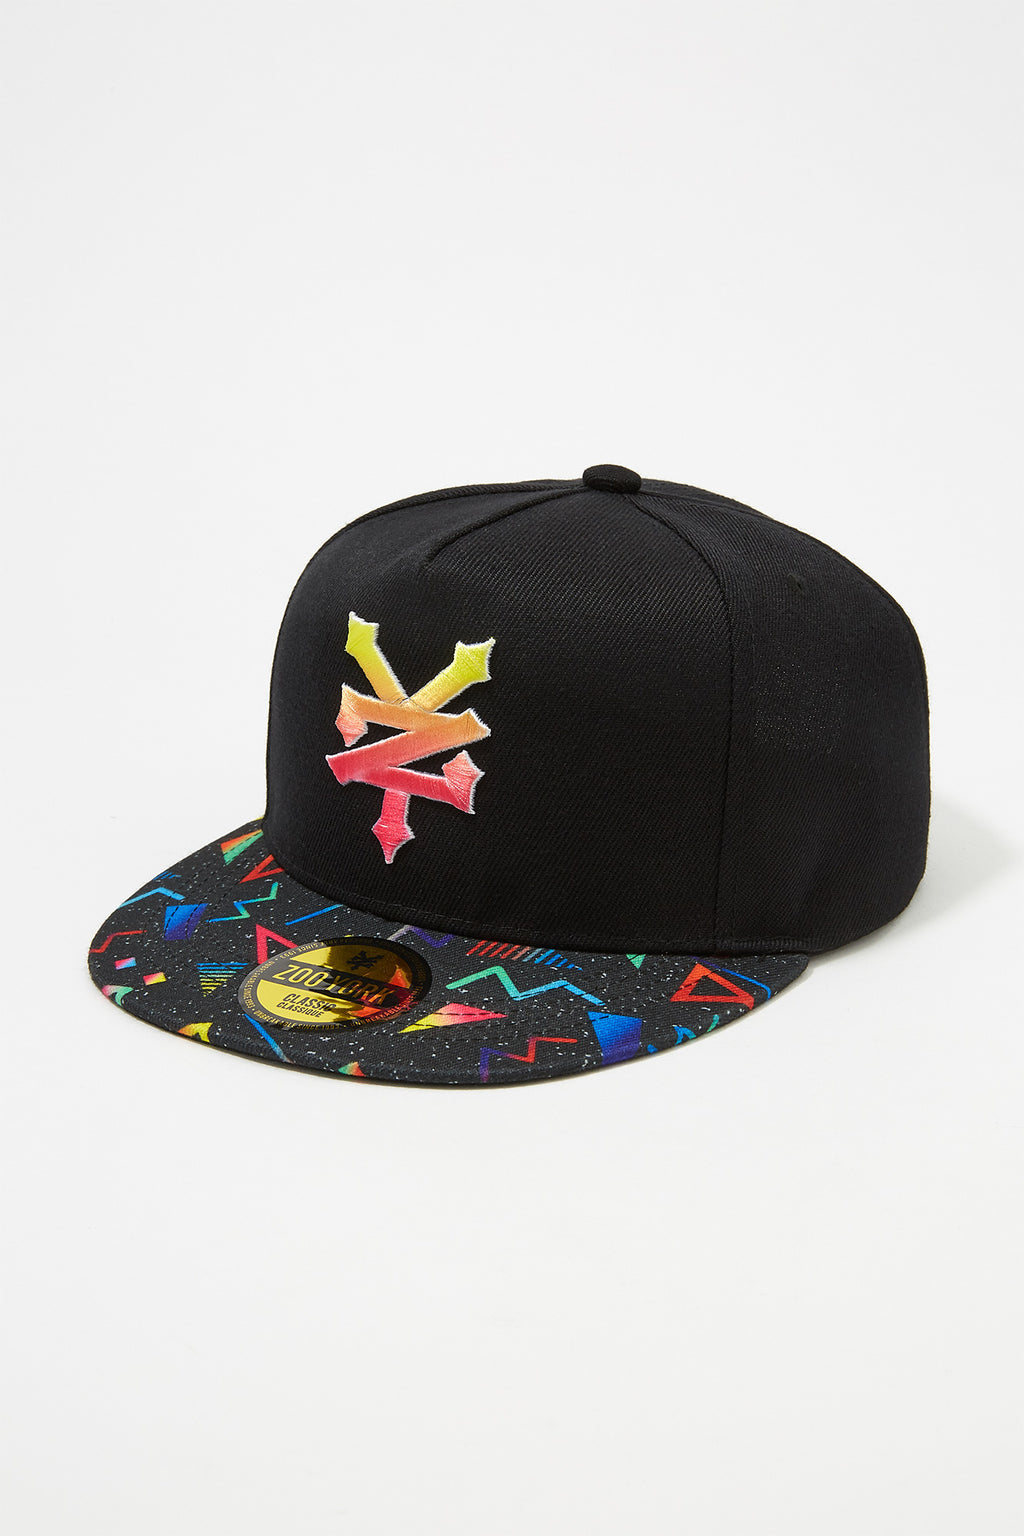 Zoo York Boys 90's Flat Brim Hat